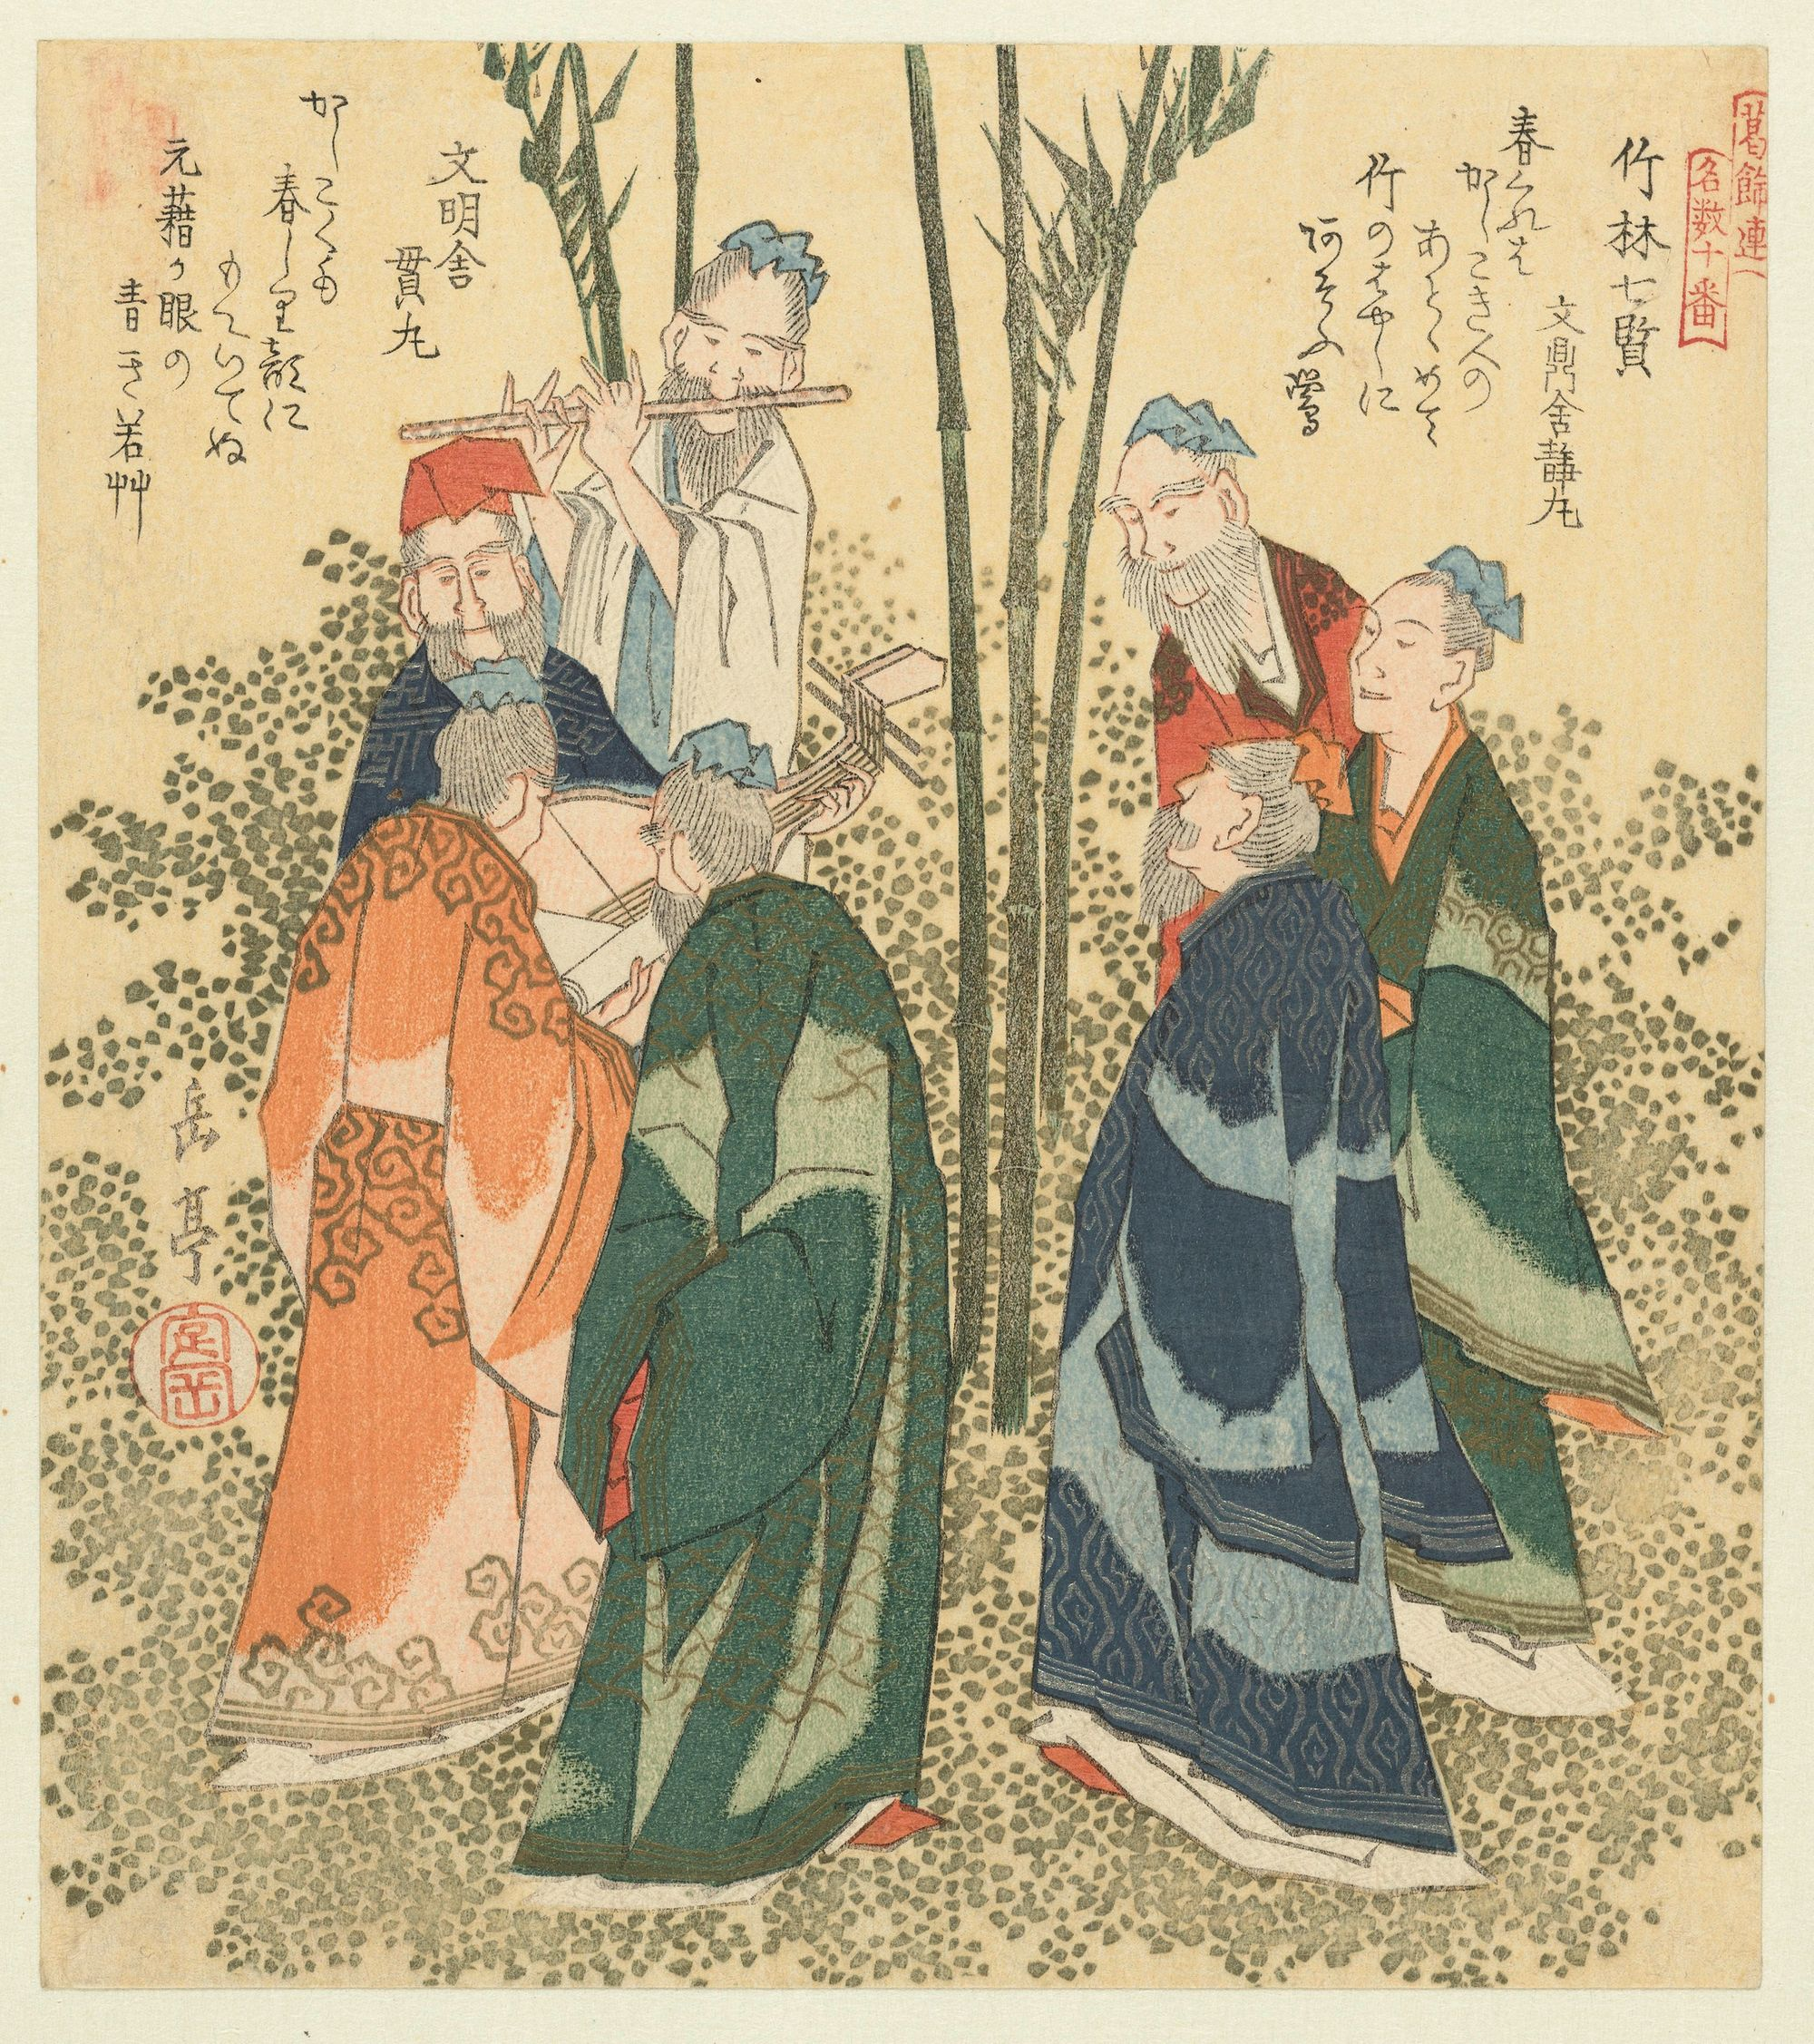 Image of the seven sages of the bamboo grove.